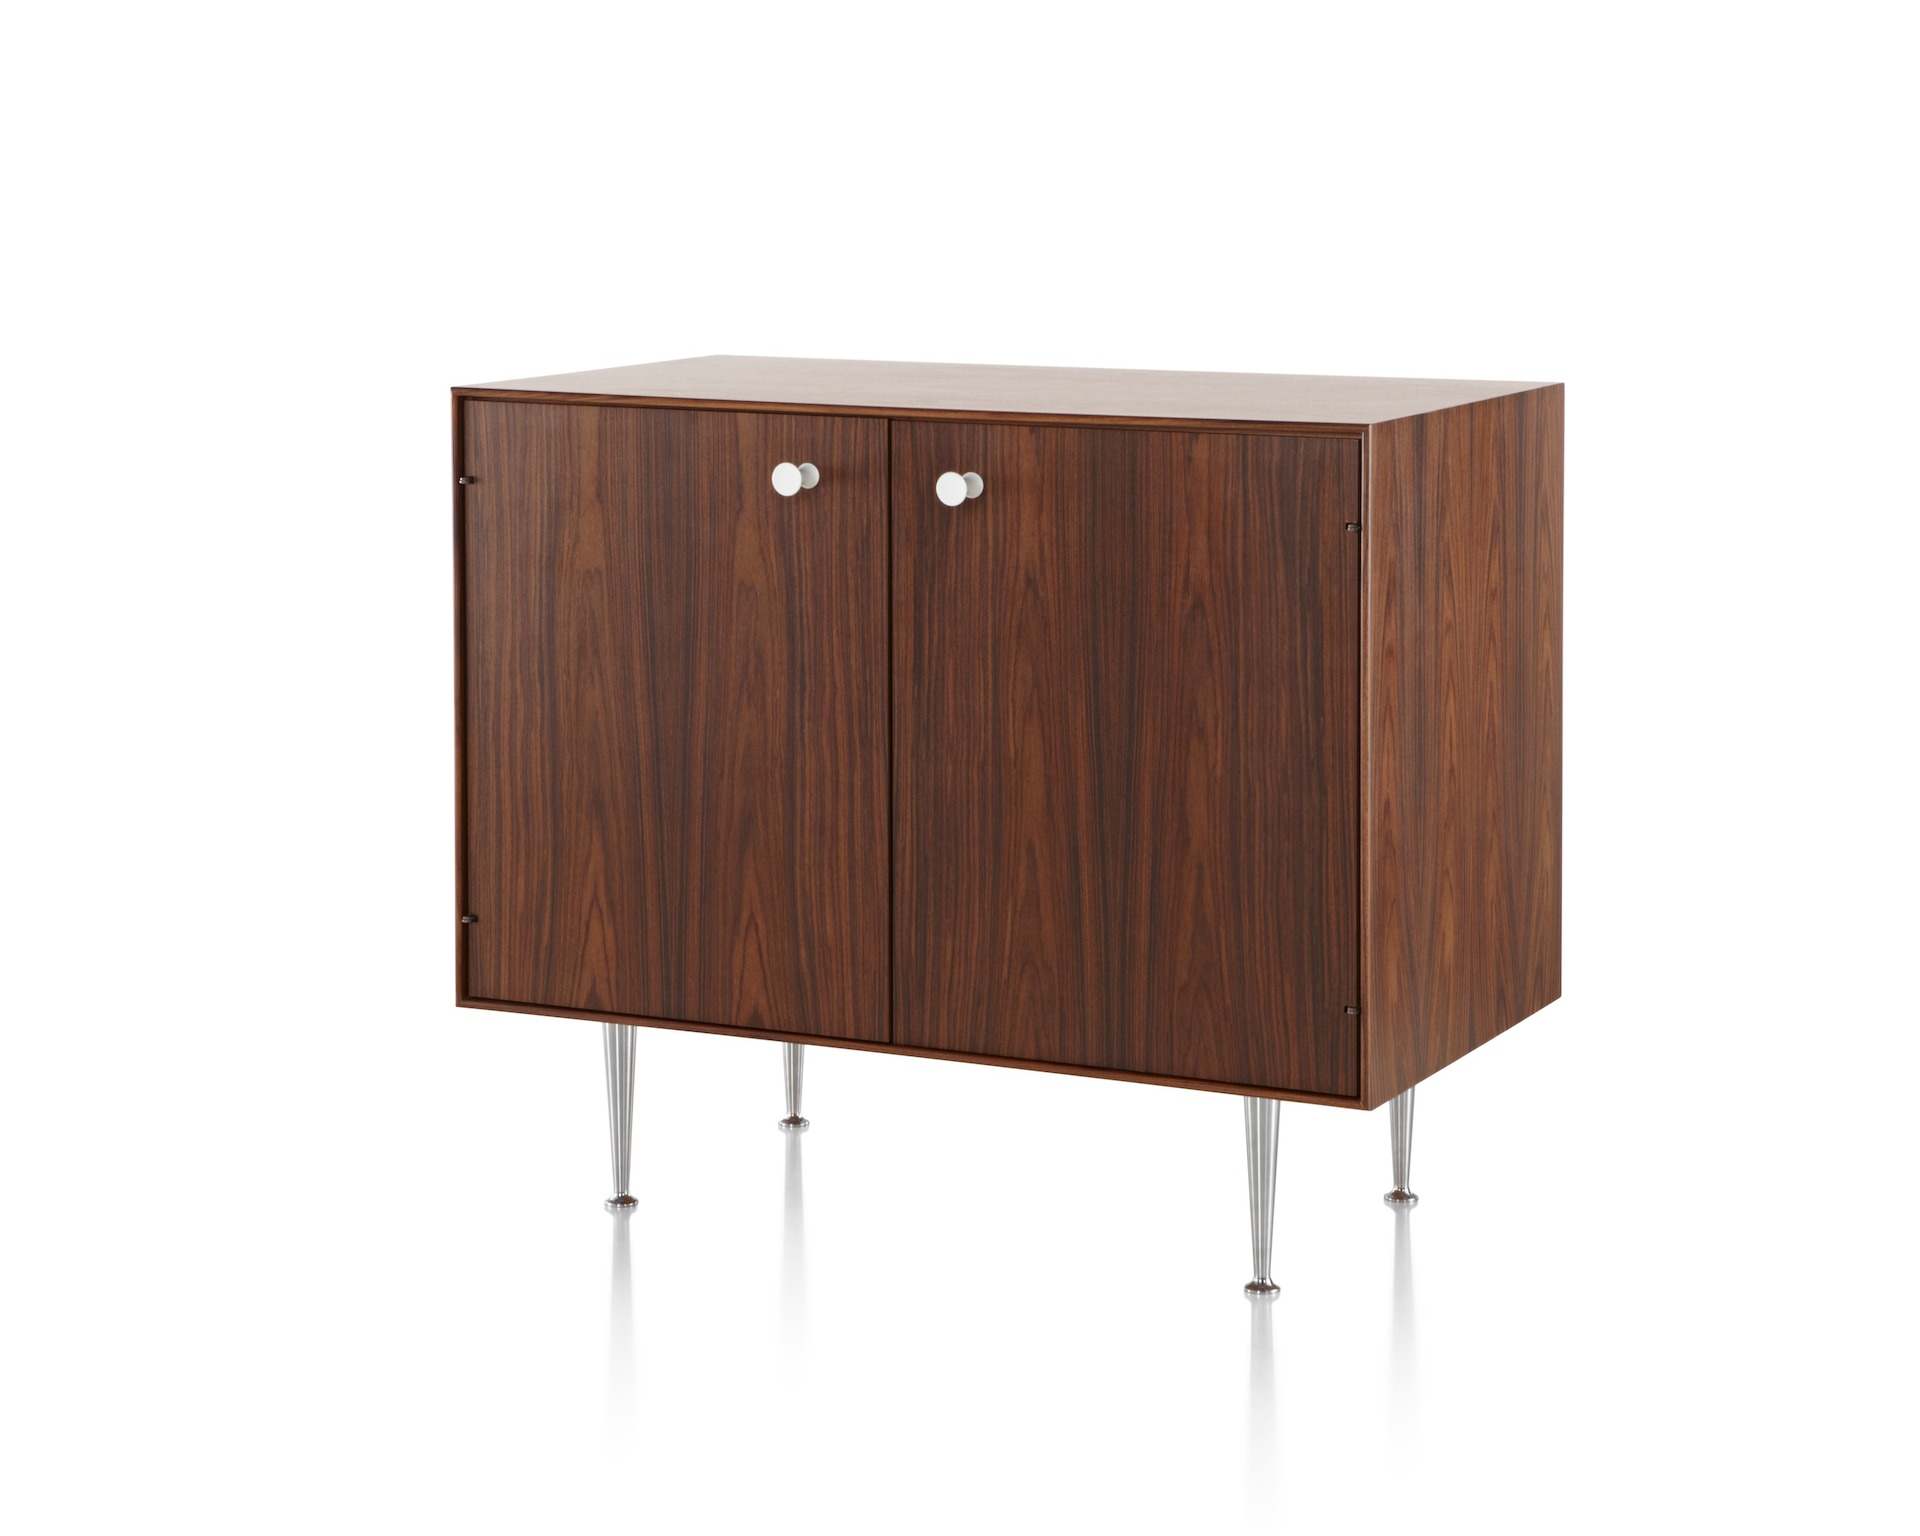 Nelson Thin Edge Cabinet